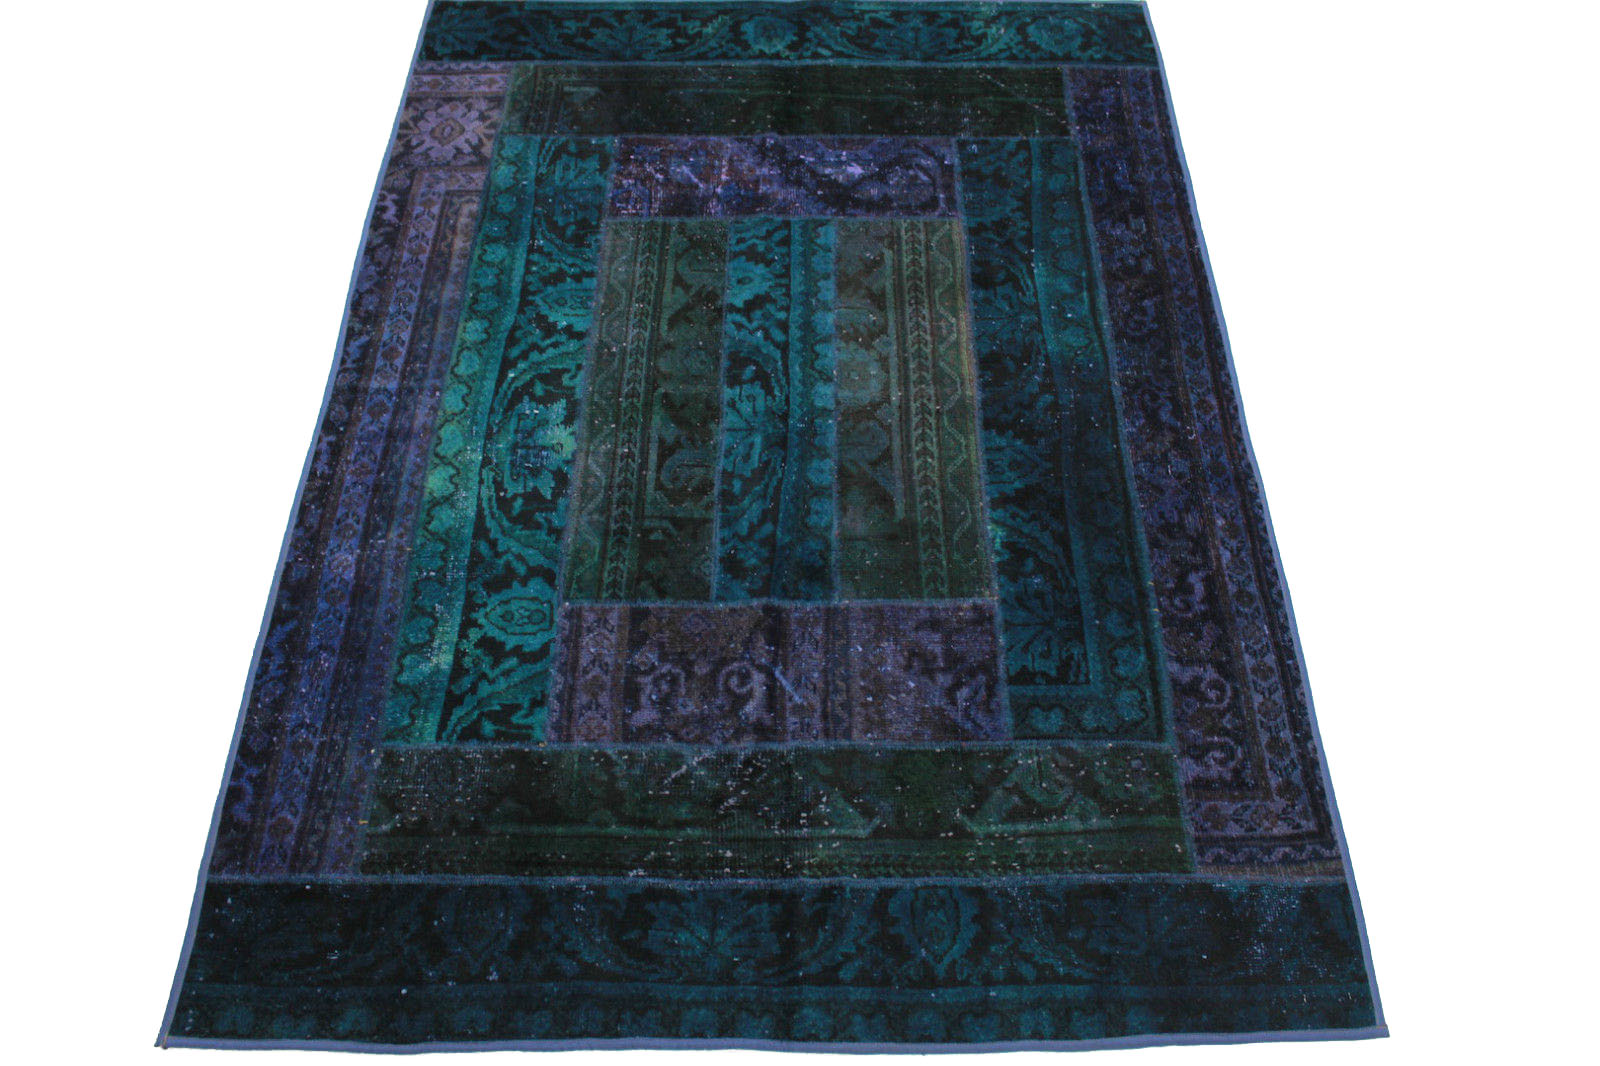 Patchwork Rug Purple Turquoise In 240x170cm 1001 1395